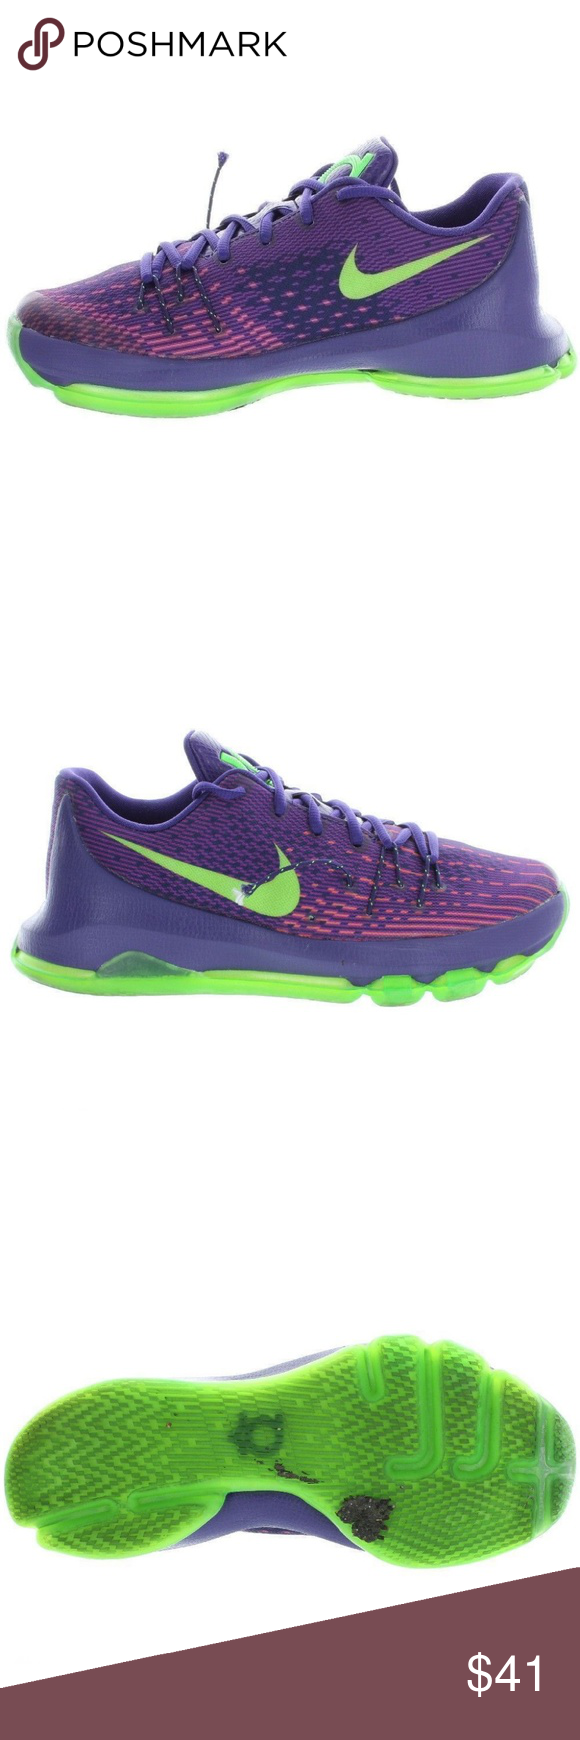 official photos 70ff1 b9673 Nike Kids KD 8 Basketball Shoes Size 6Y Medium Product Name ...